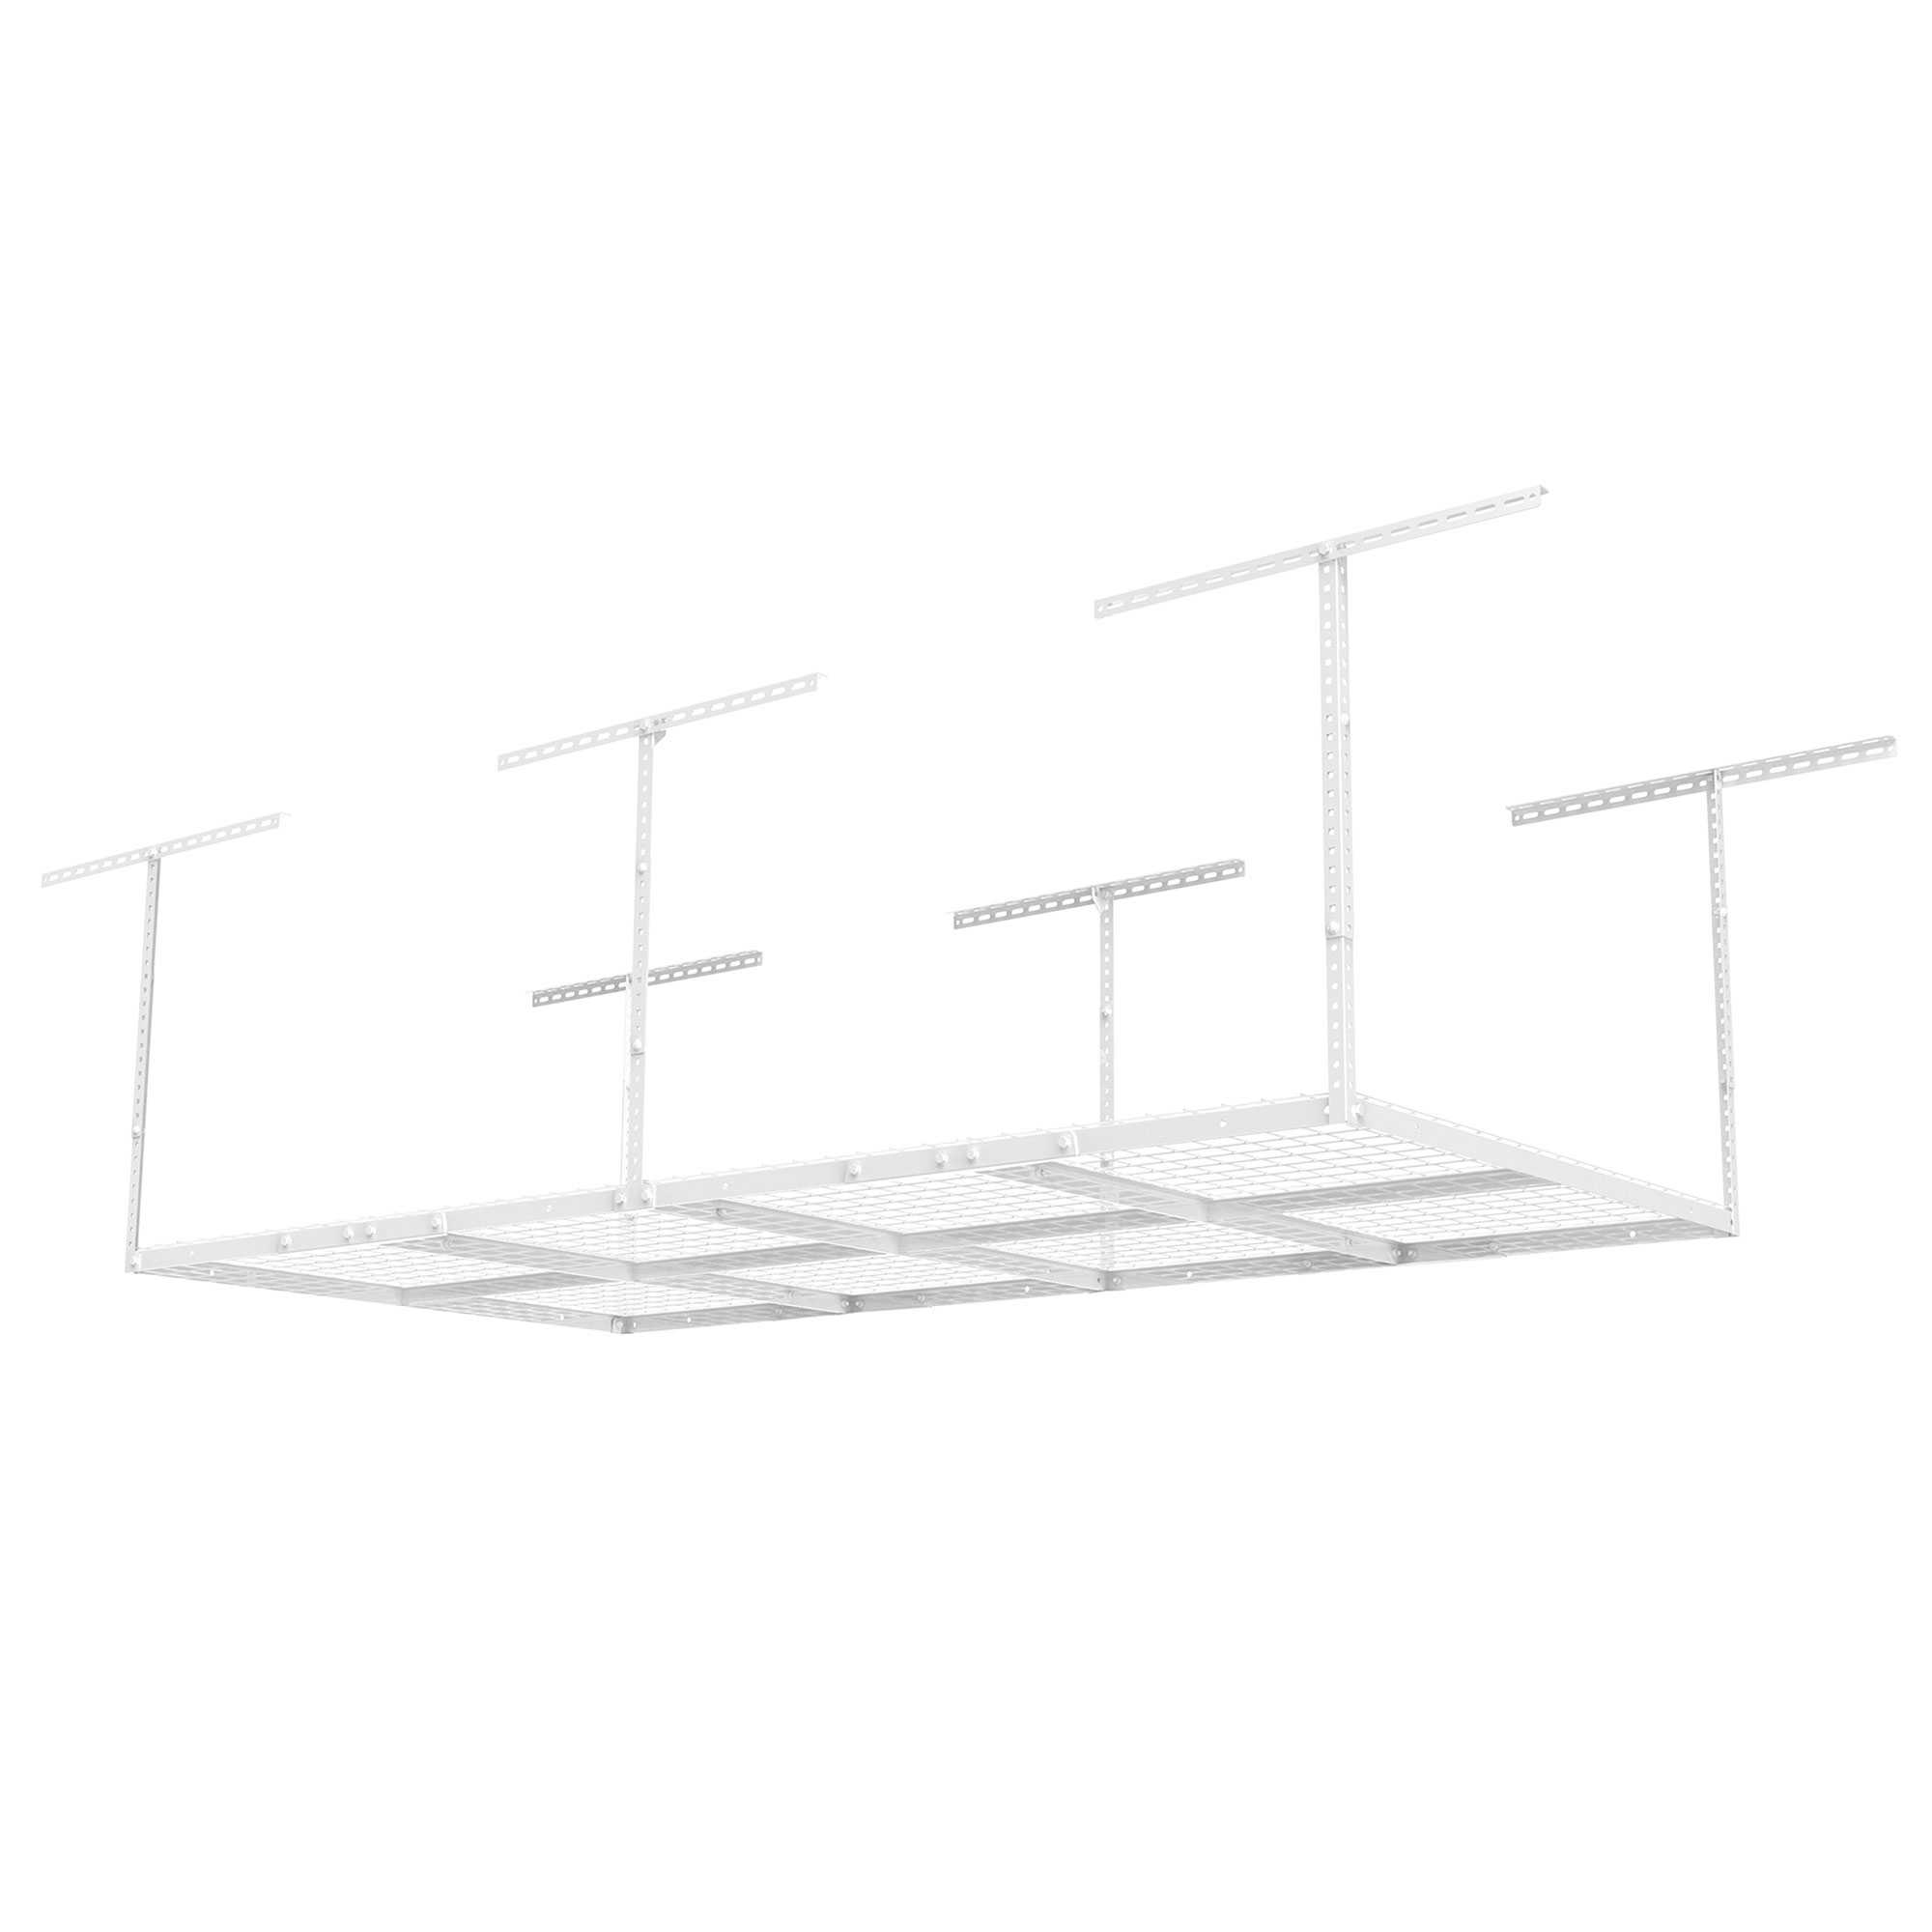 FLEXIMOUNTS 4x8 Heavy Duty Overhead Garage Adjustable Ceiling Storage Rack, 96' Length x 48' Width x 40' Height, White